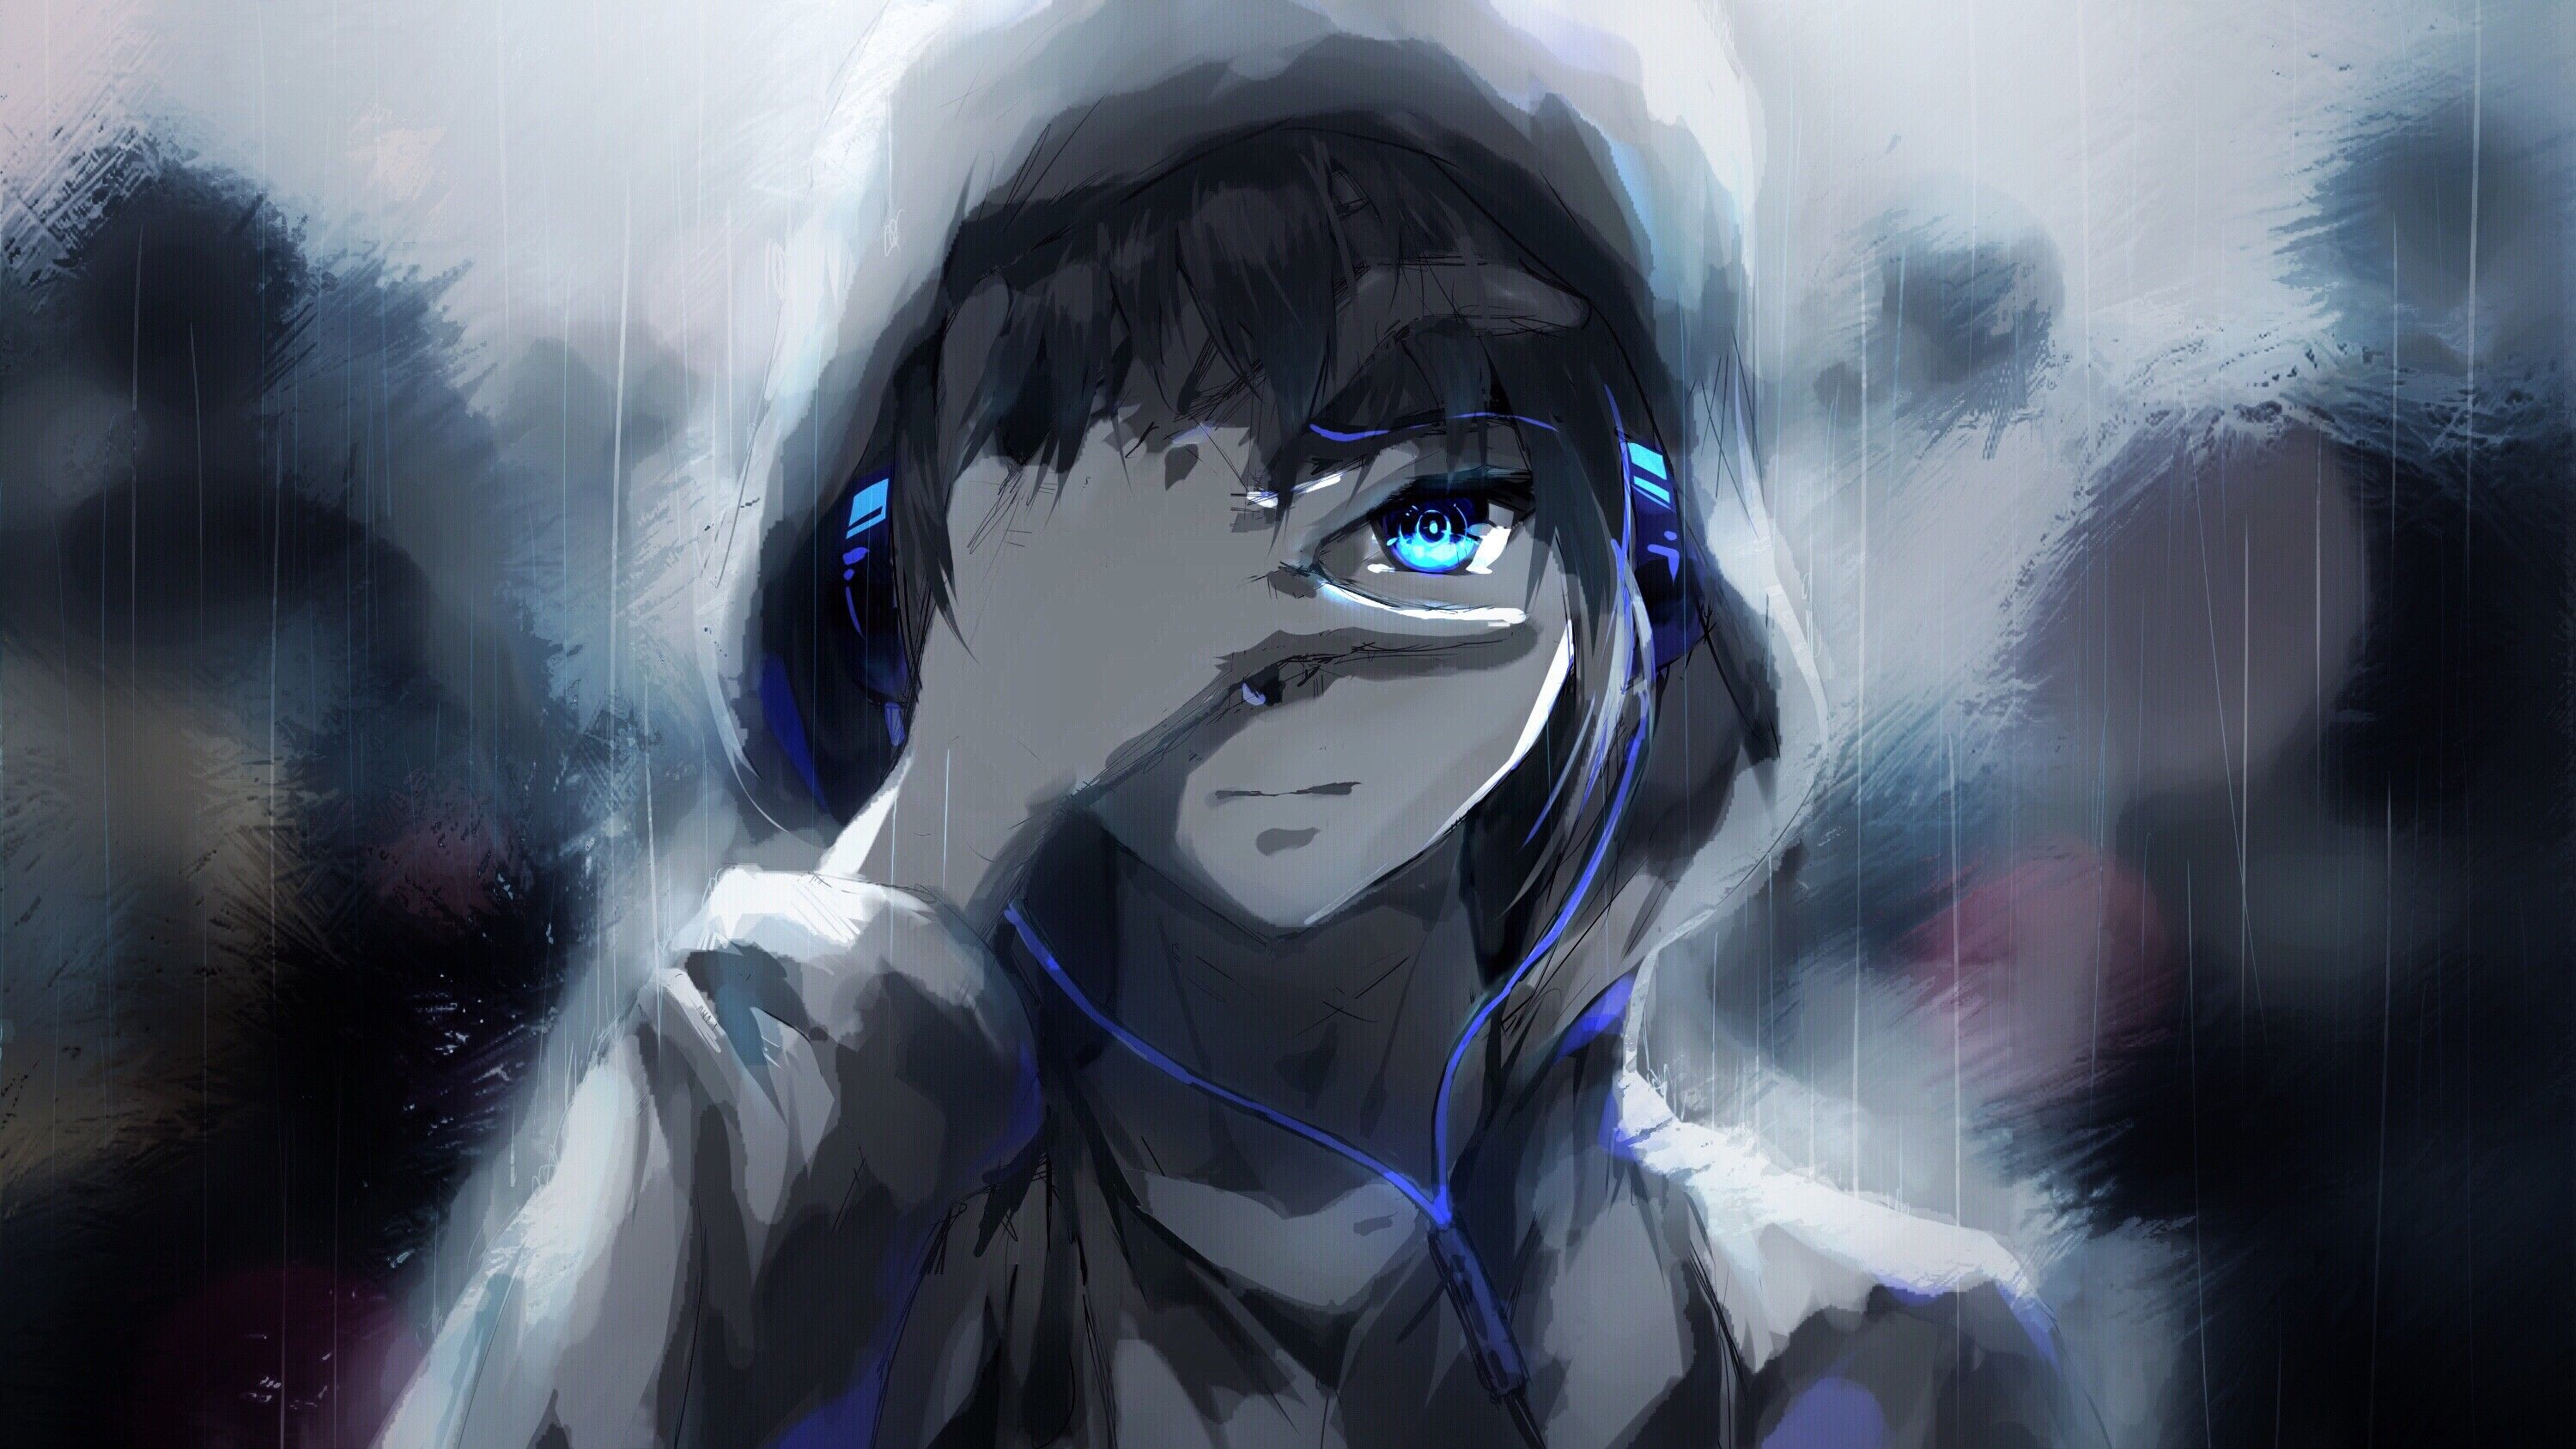 Anime Manga Anime Boys Artwork Fantasy Art Music Headphones Wallpaper No 413725 Blue Anime Anime Boy Boys Artwork